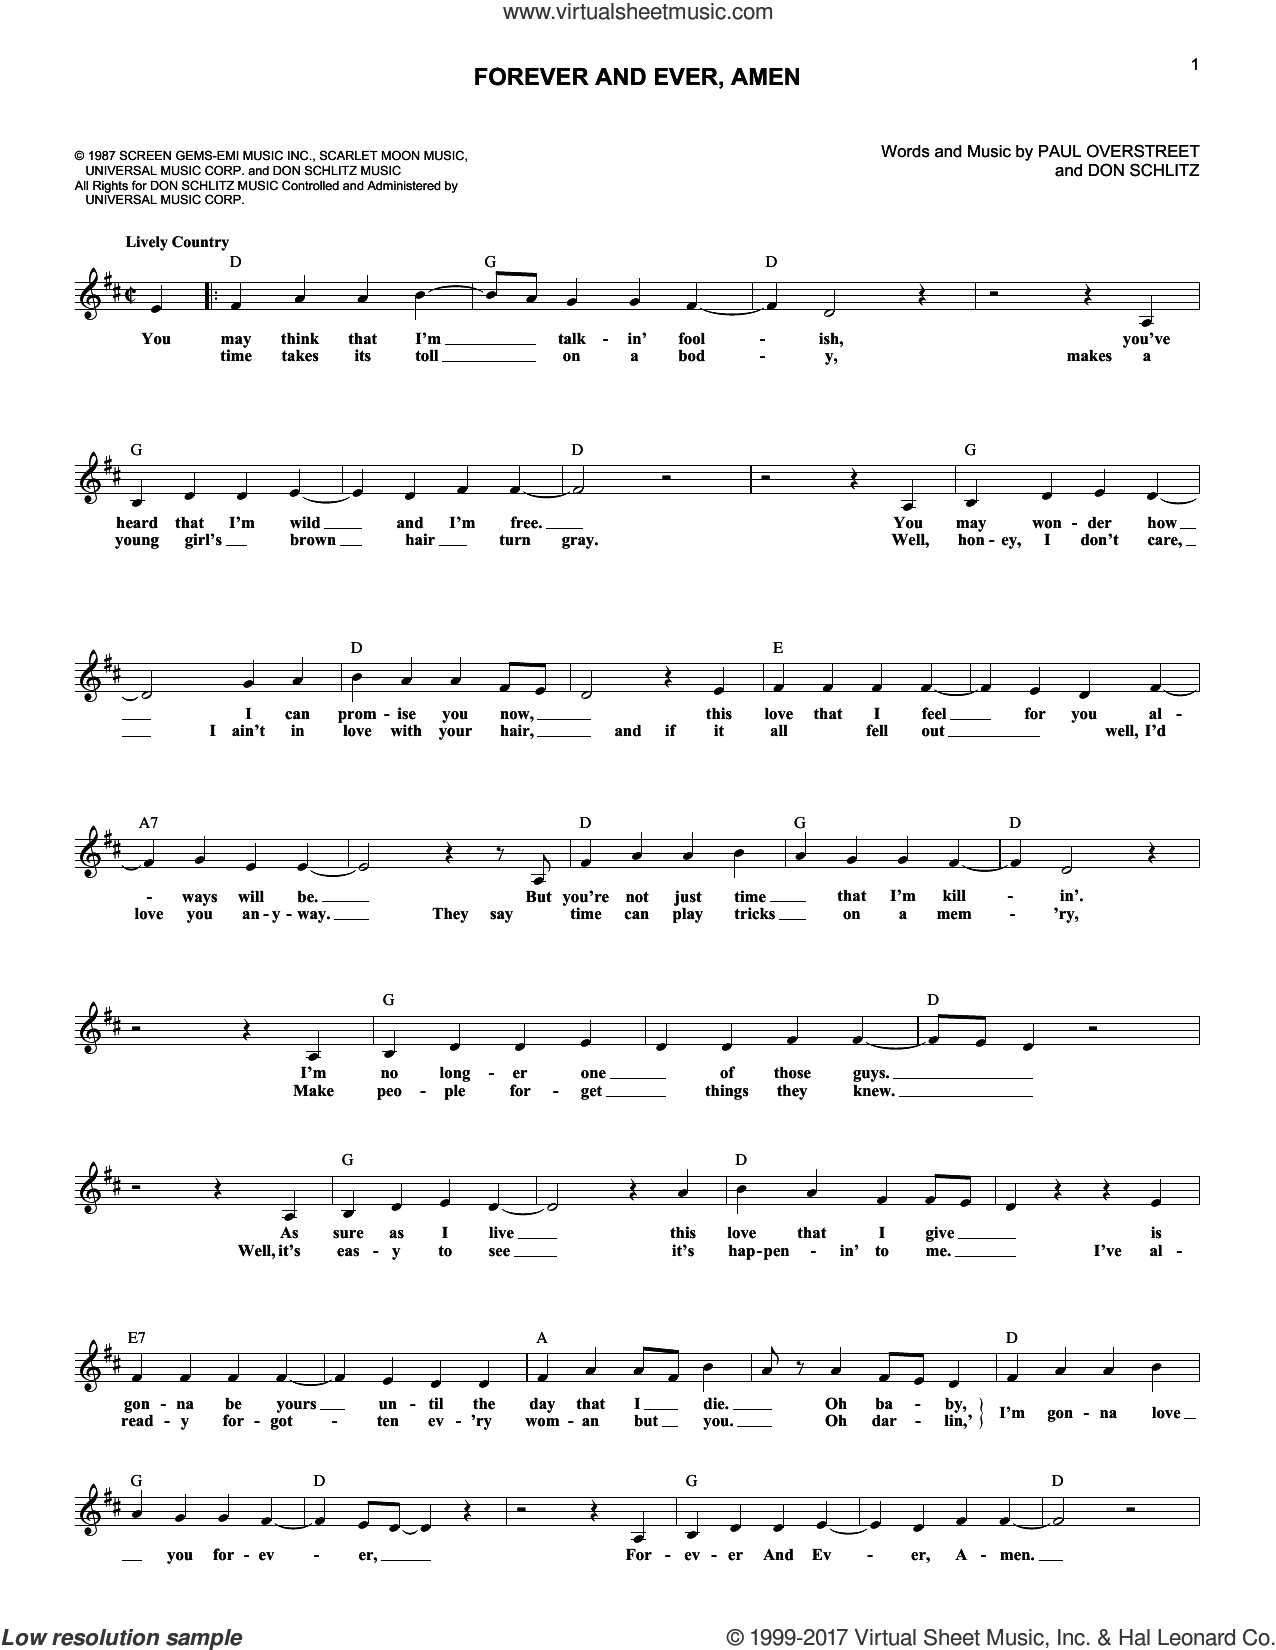 Forever And Ever, Amen sheet music for voice and other instruments (fake book) by Randy Travis, Don Schlitz and Paul Overstreet, intermediate skill level